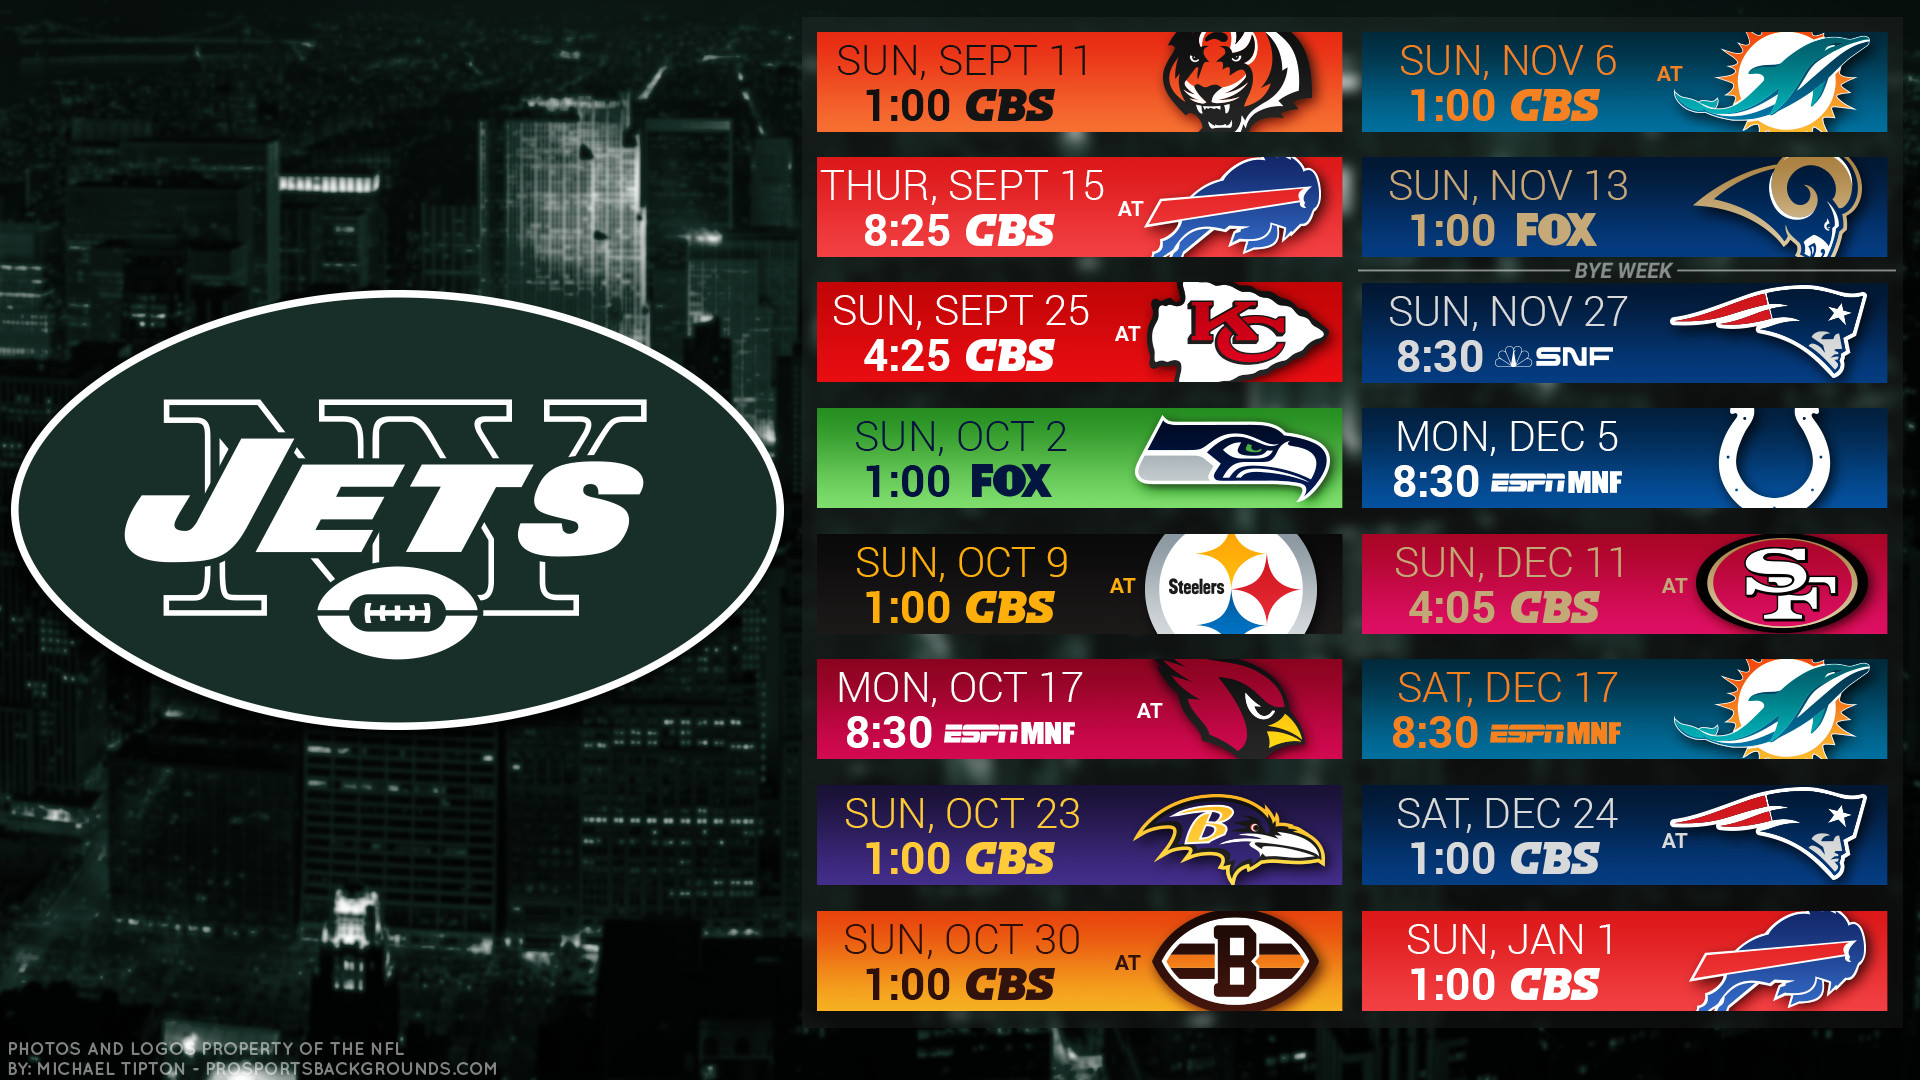 1920x1080 new york jets 2016 schedule wallpaper logo pc desktop computer nfl ...